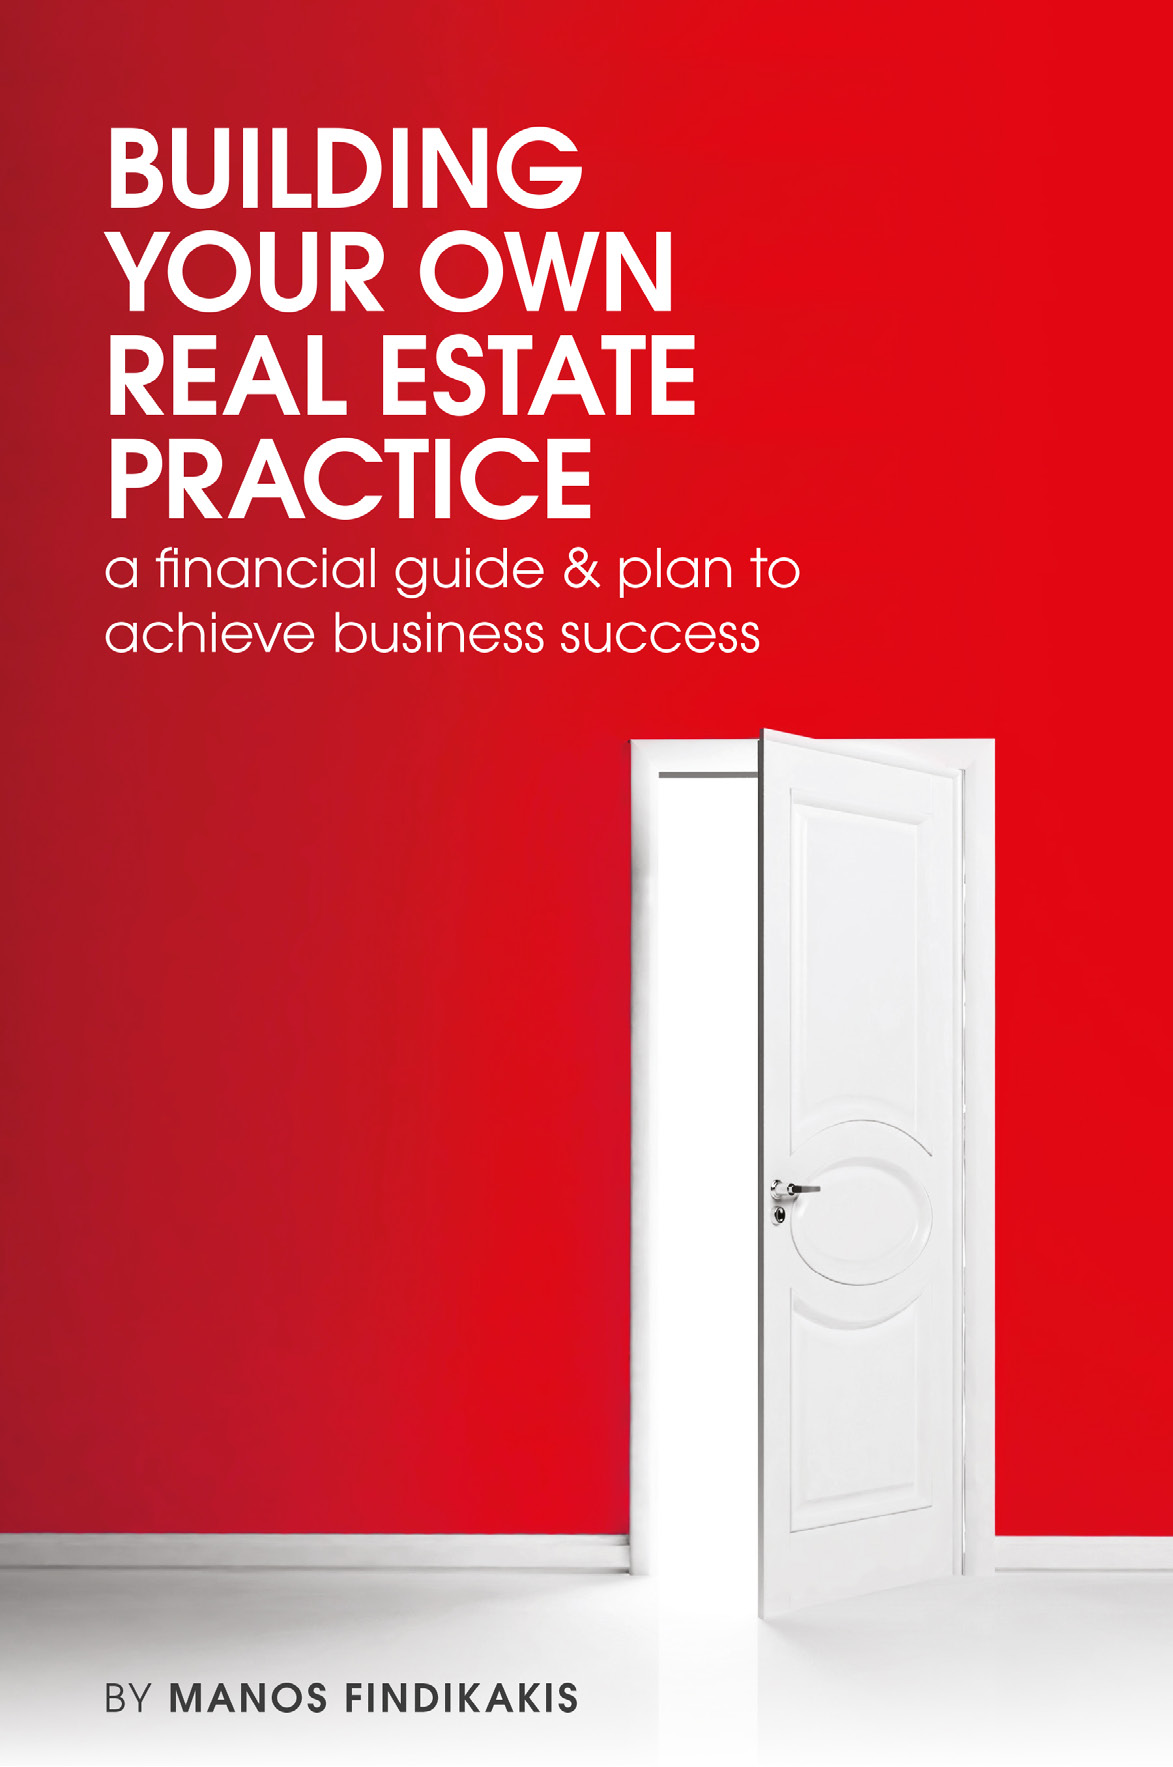 Building Your Own Real Estate Practice – a financial guide & plan to achieve business success by Manos Findikakis